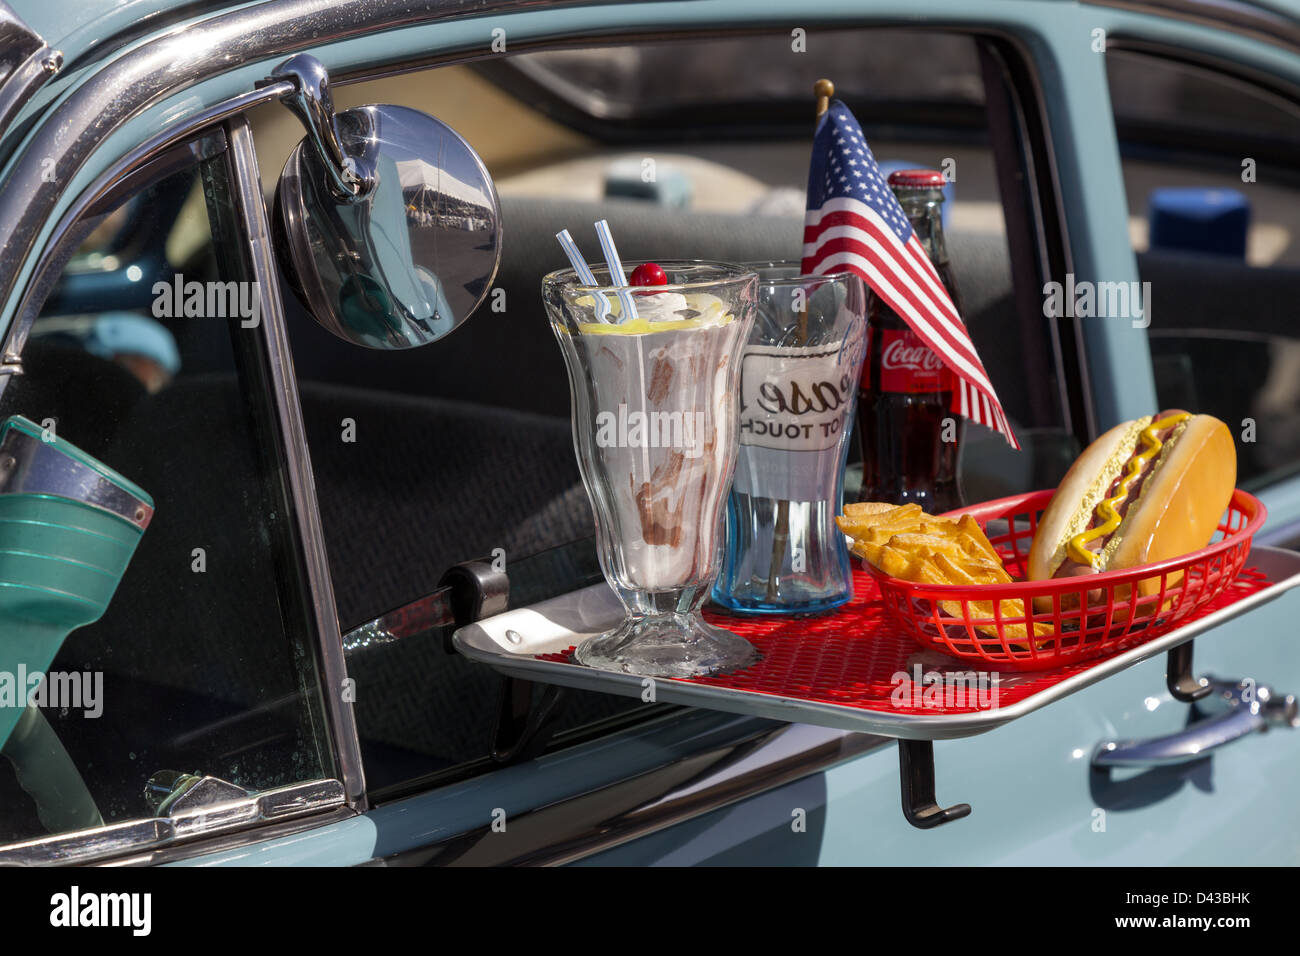 Car hop tray hung on the window of a classic car closeup - Stock Image